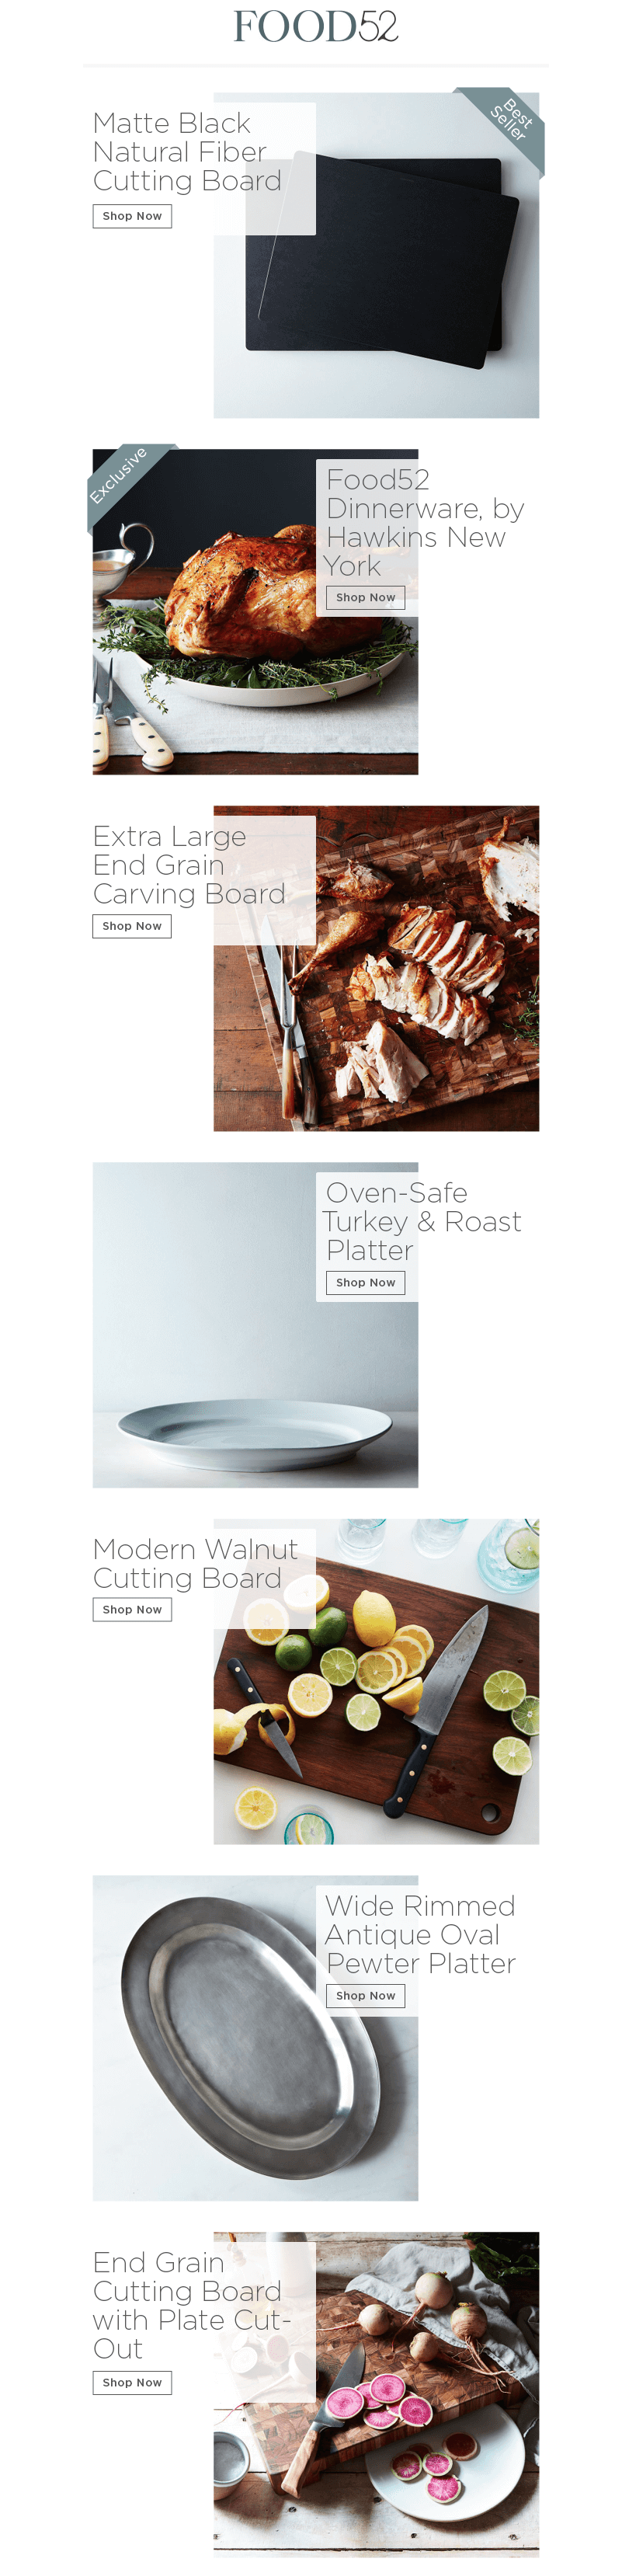 Food52 Thanksgiving email design